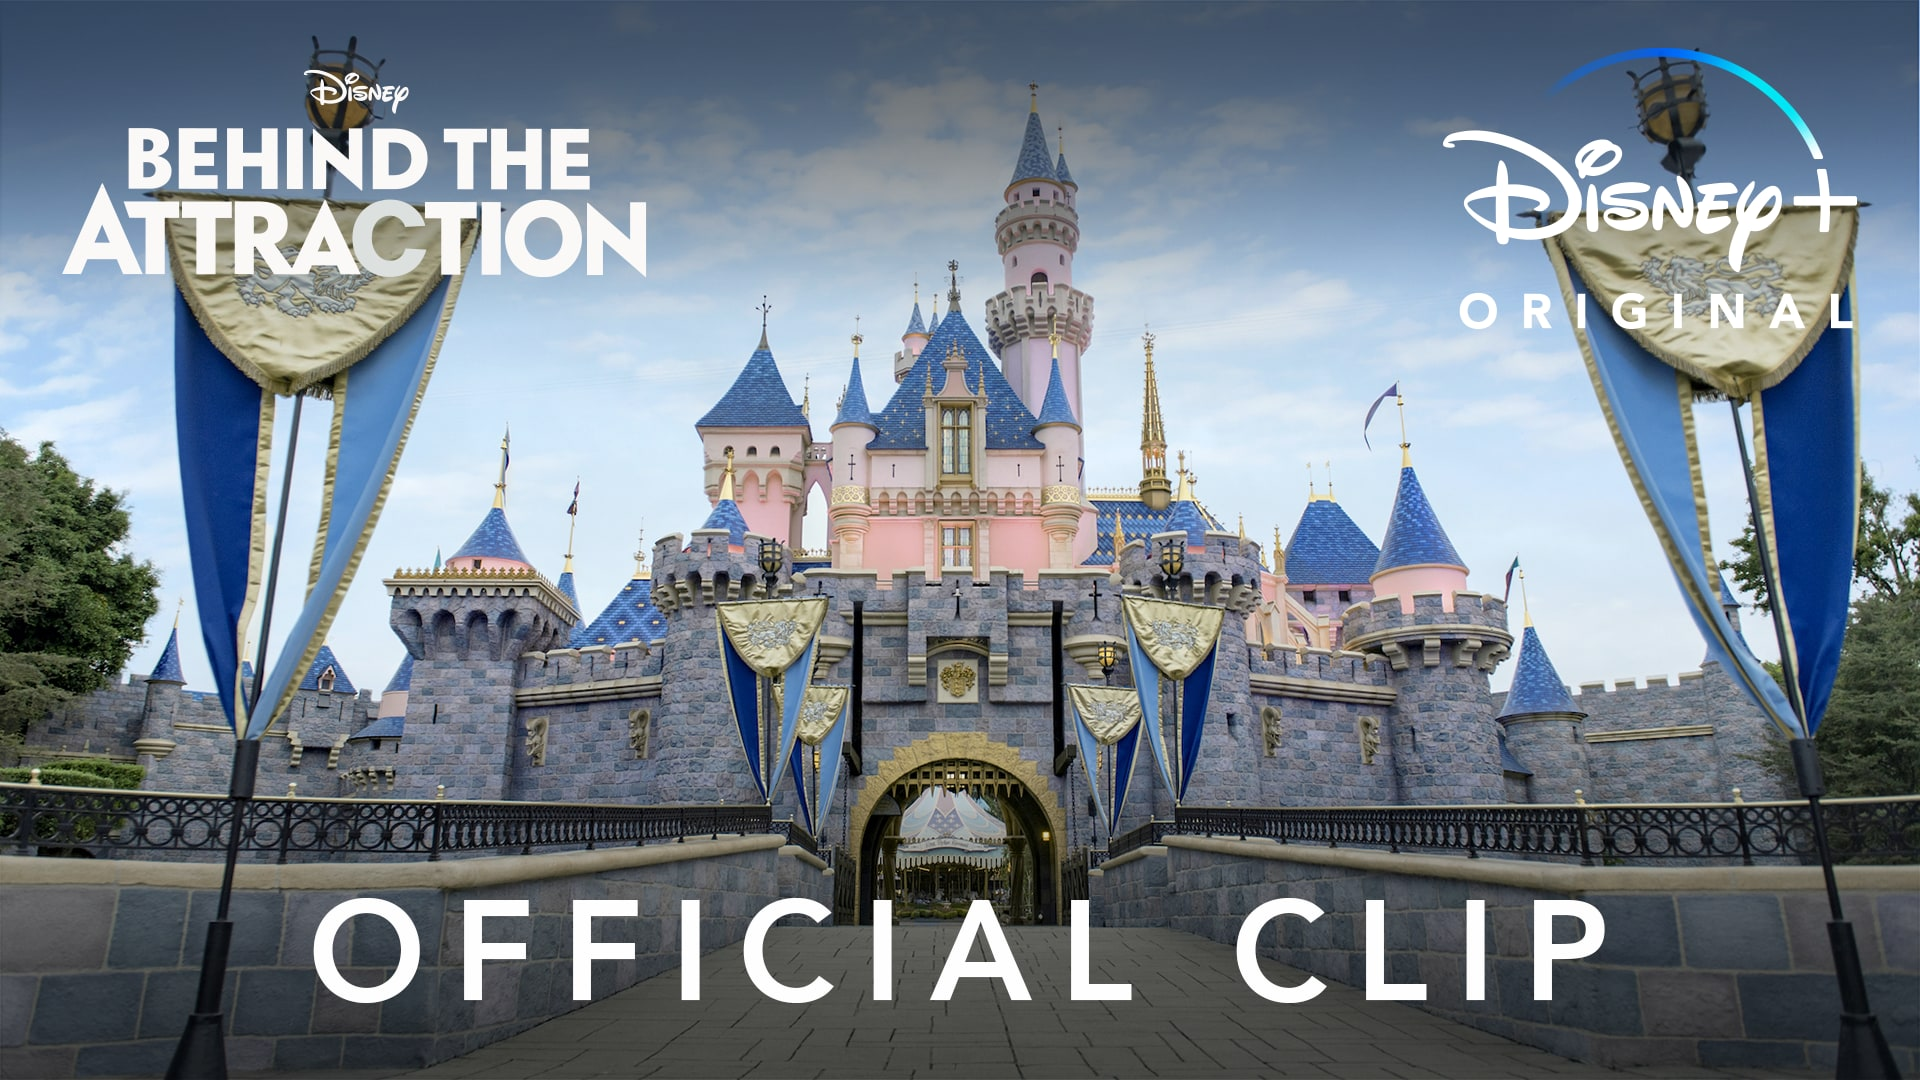 Official Clip – The Castles | Behind the Attraction | Disney+